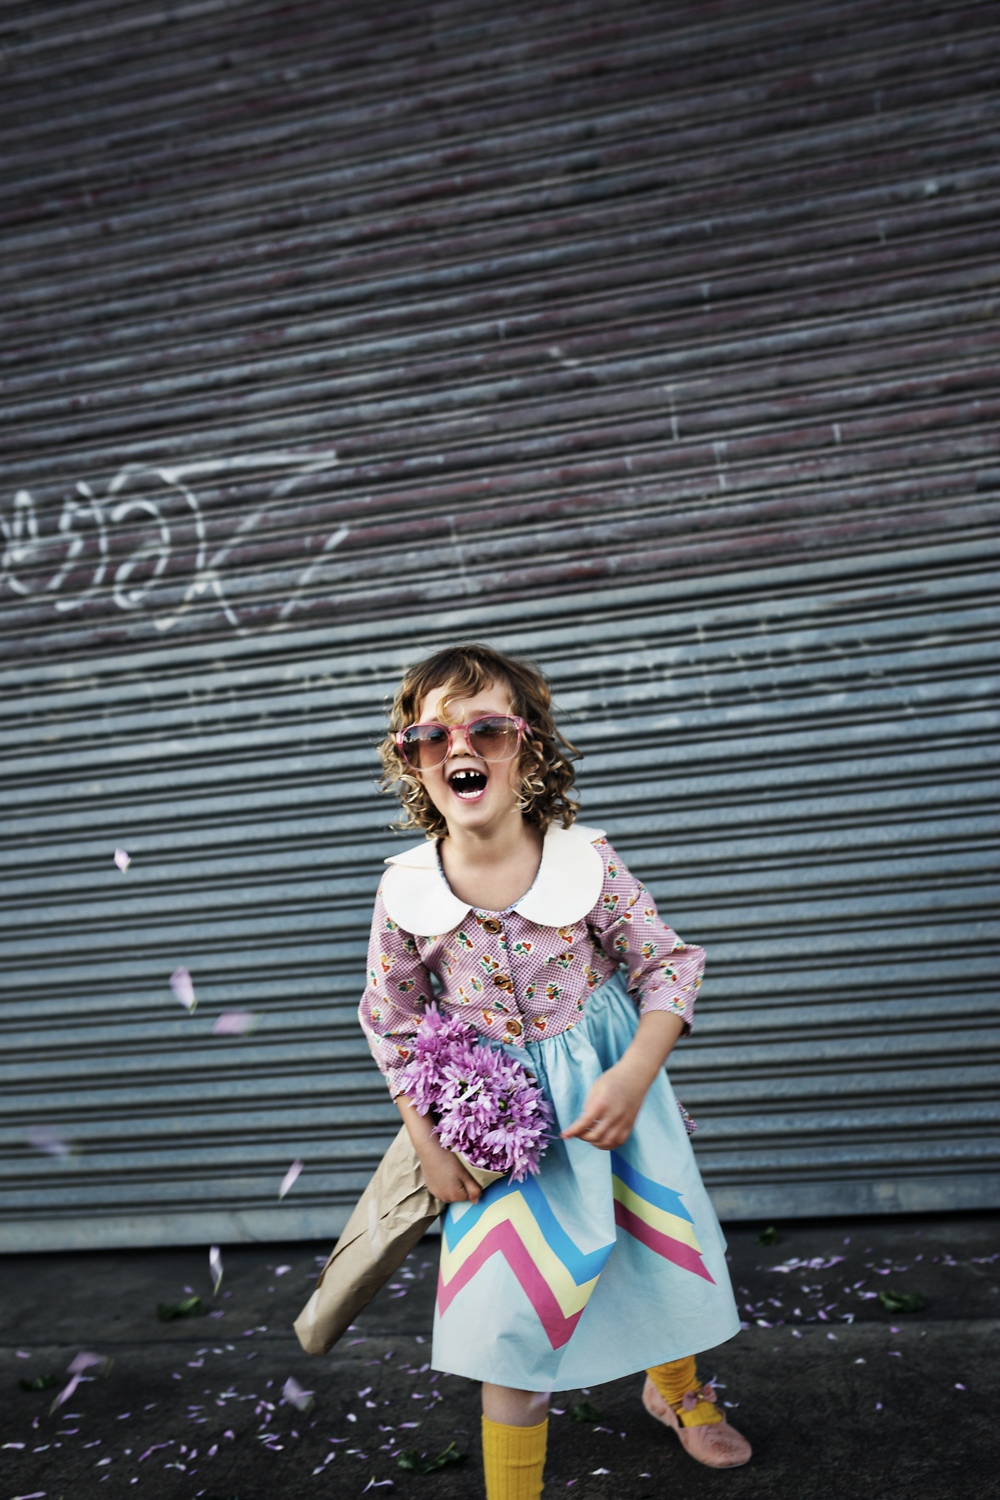 Girl with curls laughs during fun photo shoot.